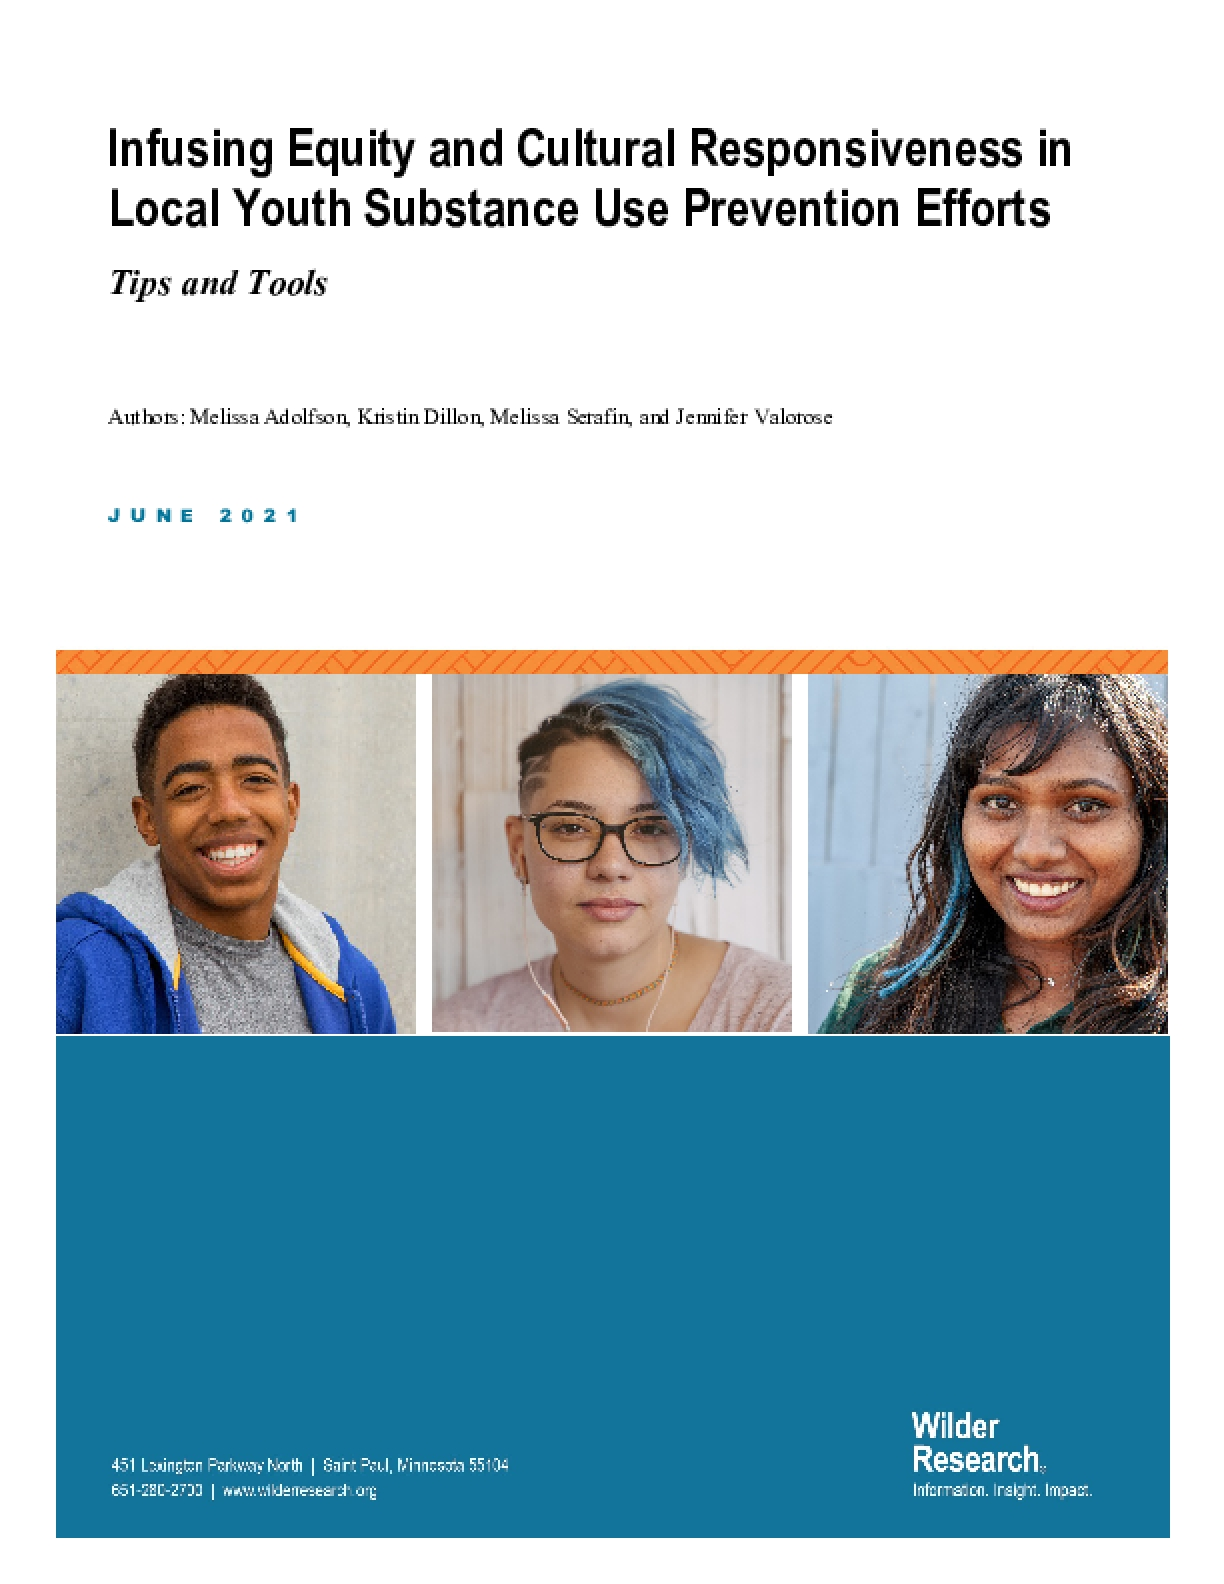 Infusing Equity and Cultural Responsiveness in Local Youth Substance Use Prevention Efforts: Tips and Tools